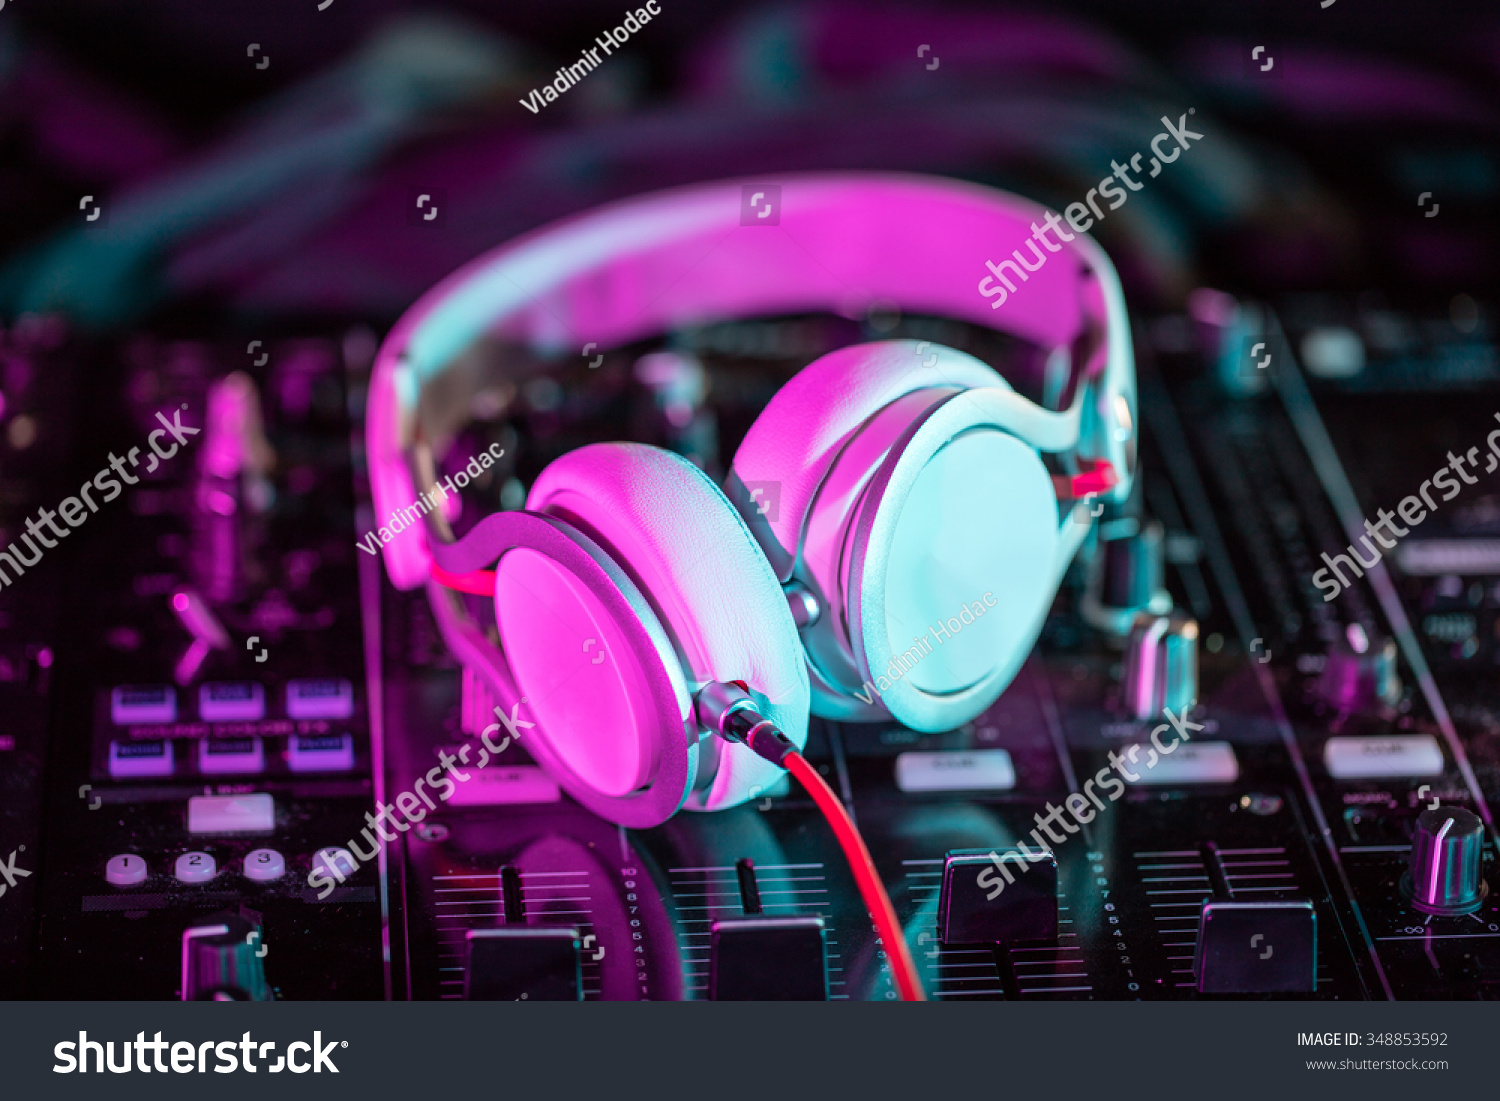 Dj sound equipment nightclubs music festivals stock photo for House music images